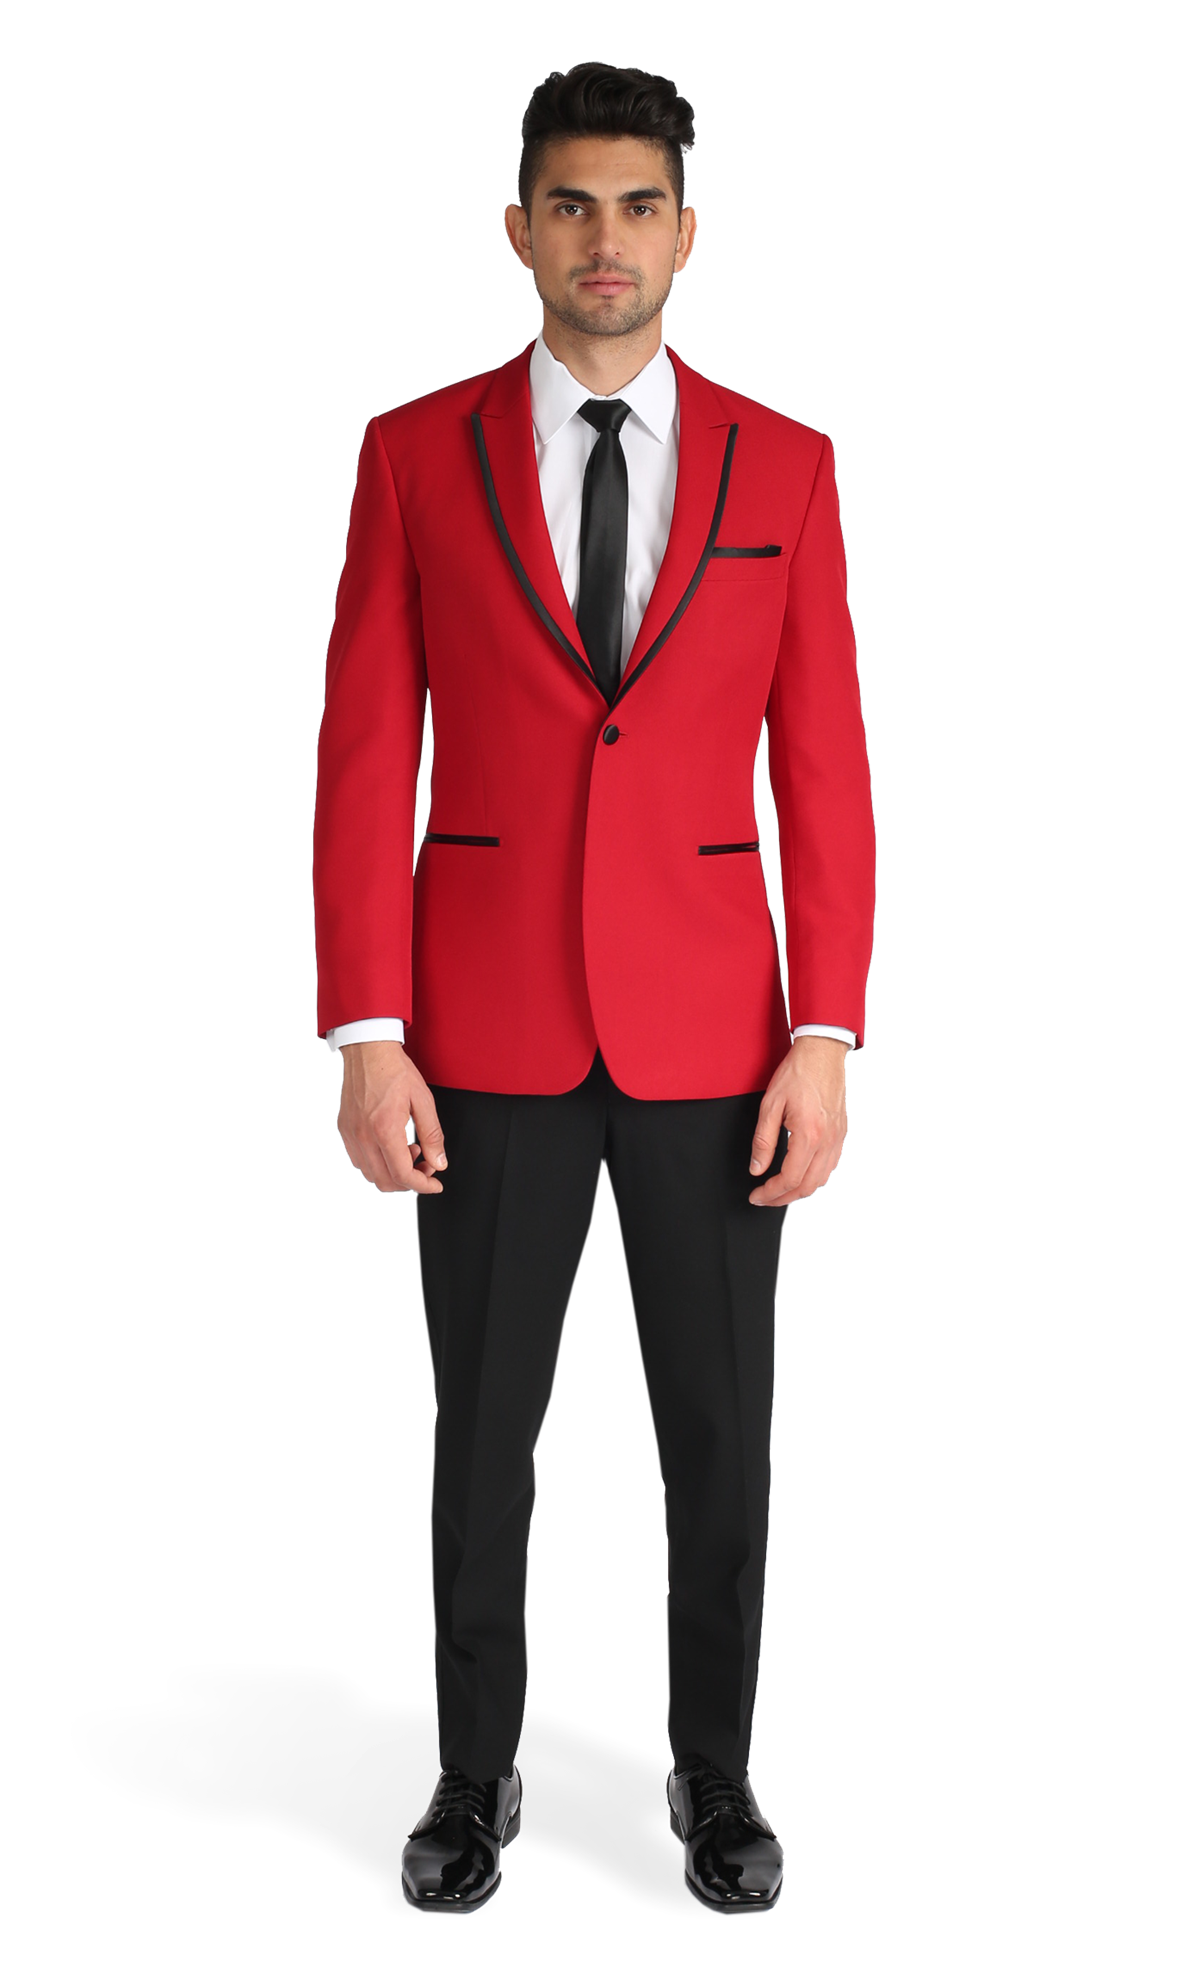 6700638ca4d0 Red Peak Lapel Tuxedo | Colored Suits and Tuxedos in 2019 | Tuxedo ...